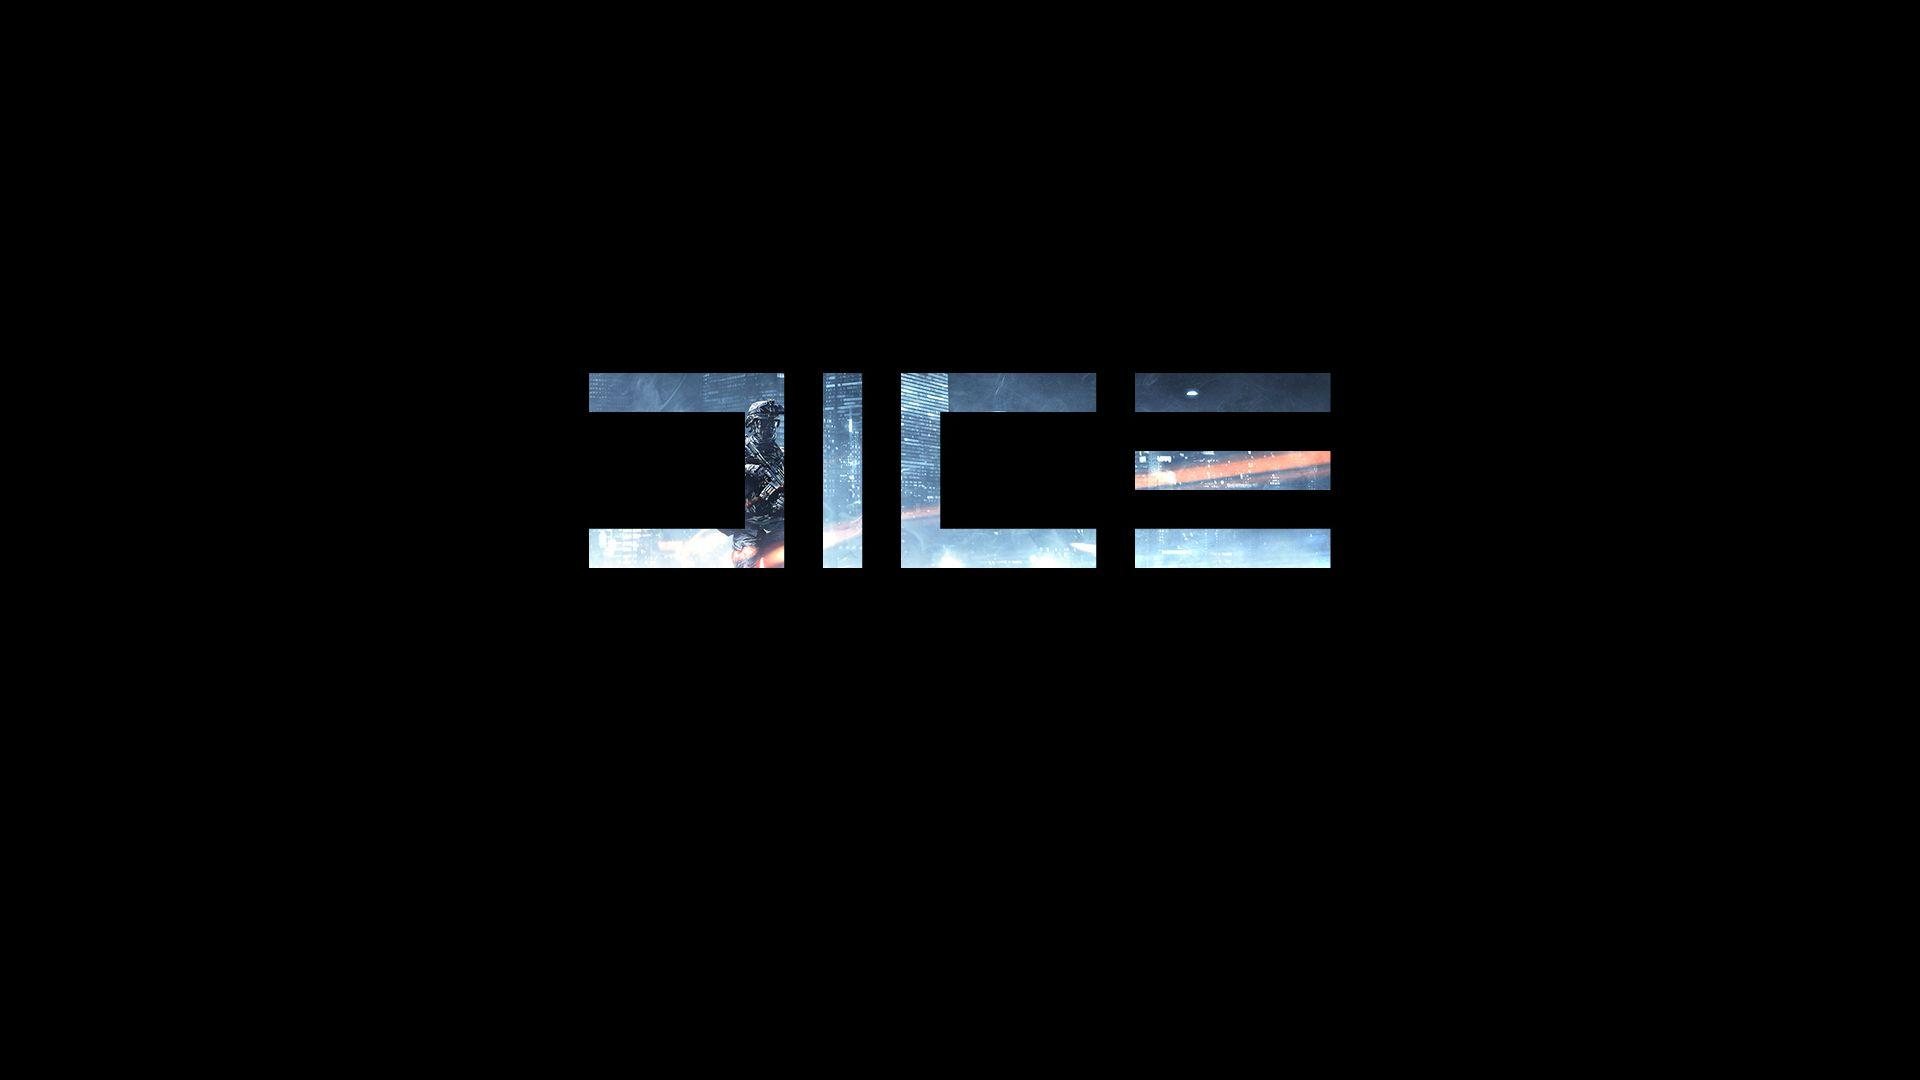 wallpapers dice free